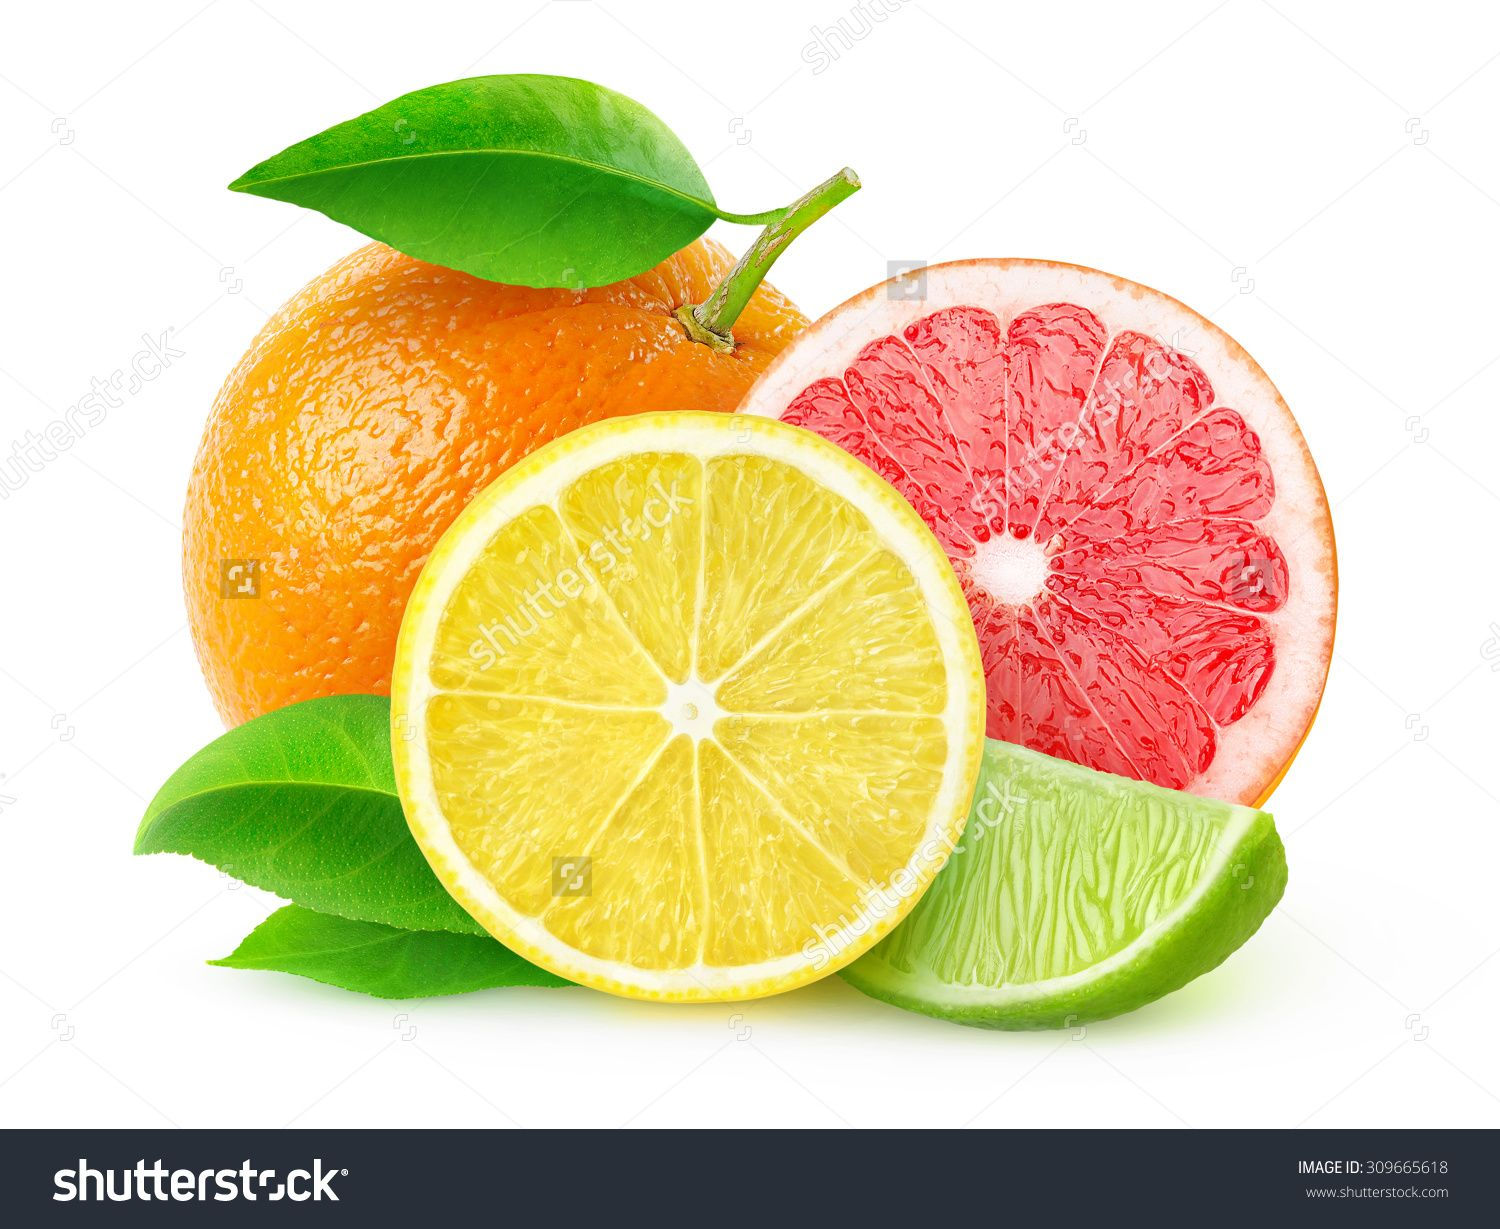 Isolated Citrus Fruits Pieces Of Lemon Lime Pink Grapefruit And